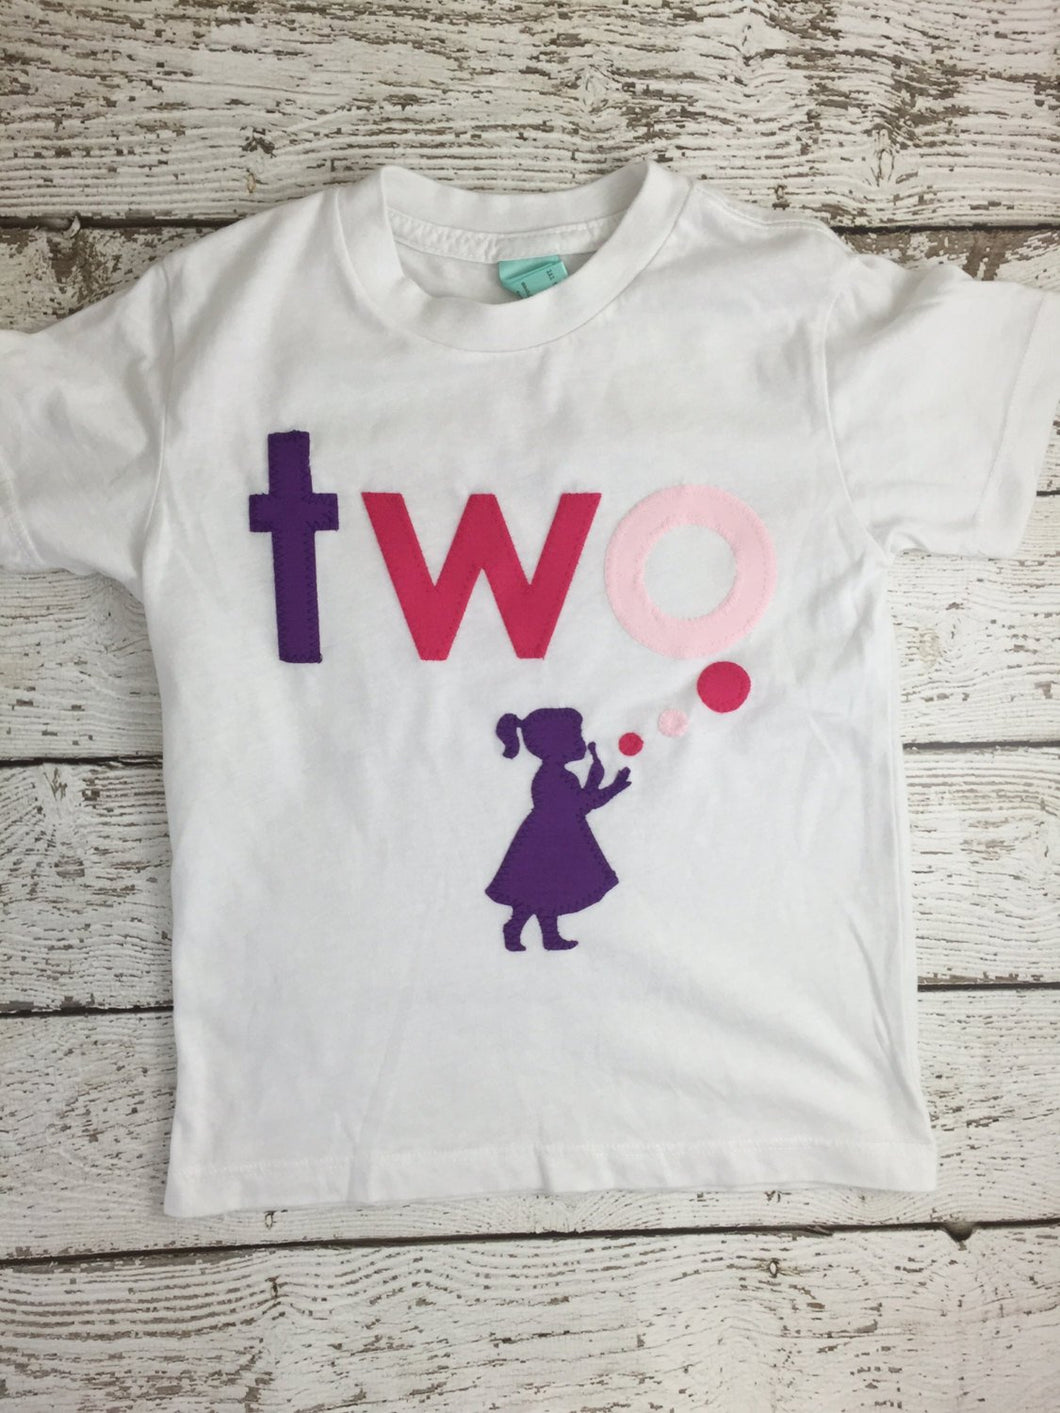 Bubble party bubble shirt Bubble theme birthday shirt can be customized for boys or girls any age and color kid's clothing custom shirt